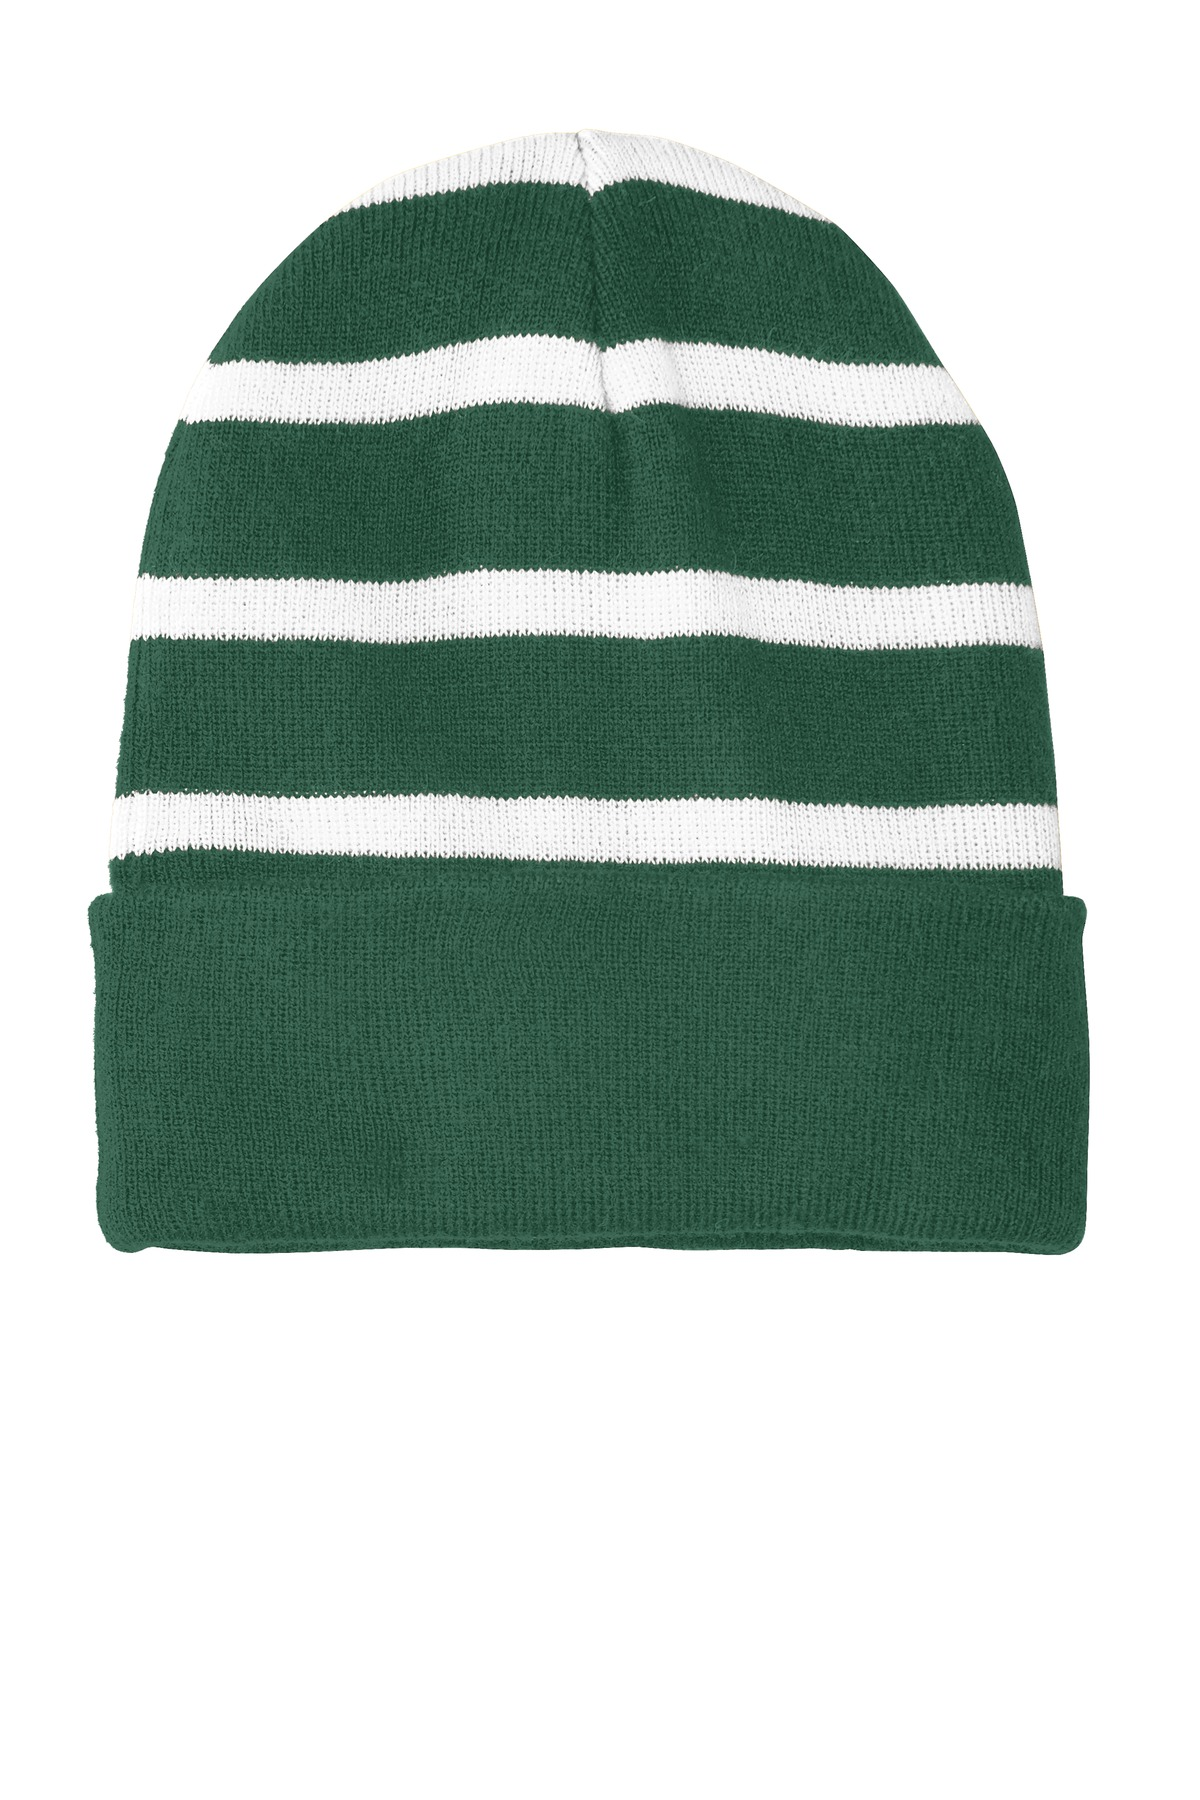 Sport-Tek ®  Striped Beanie with Solid Band. STC31 - Forest Green/ White